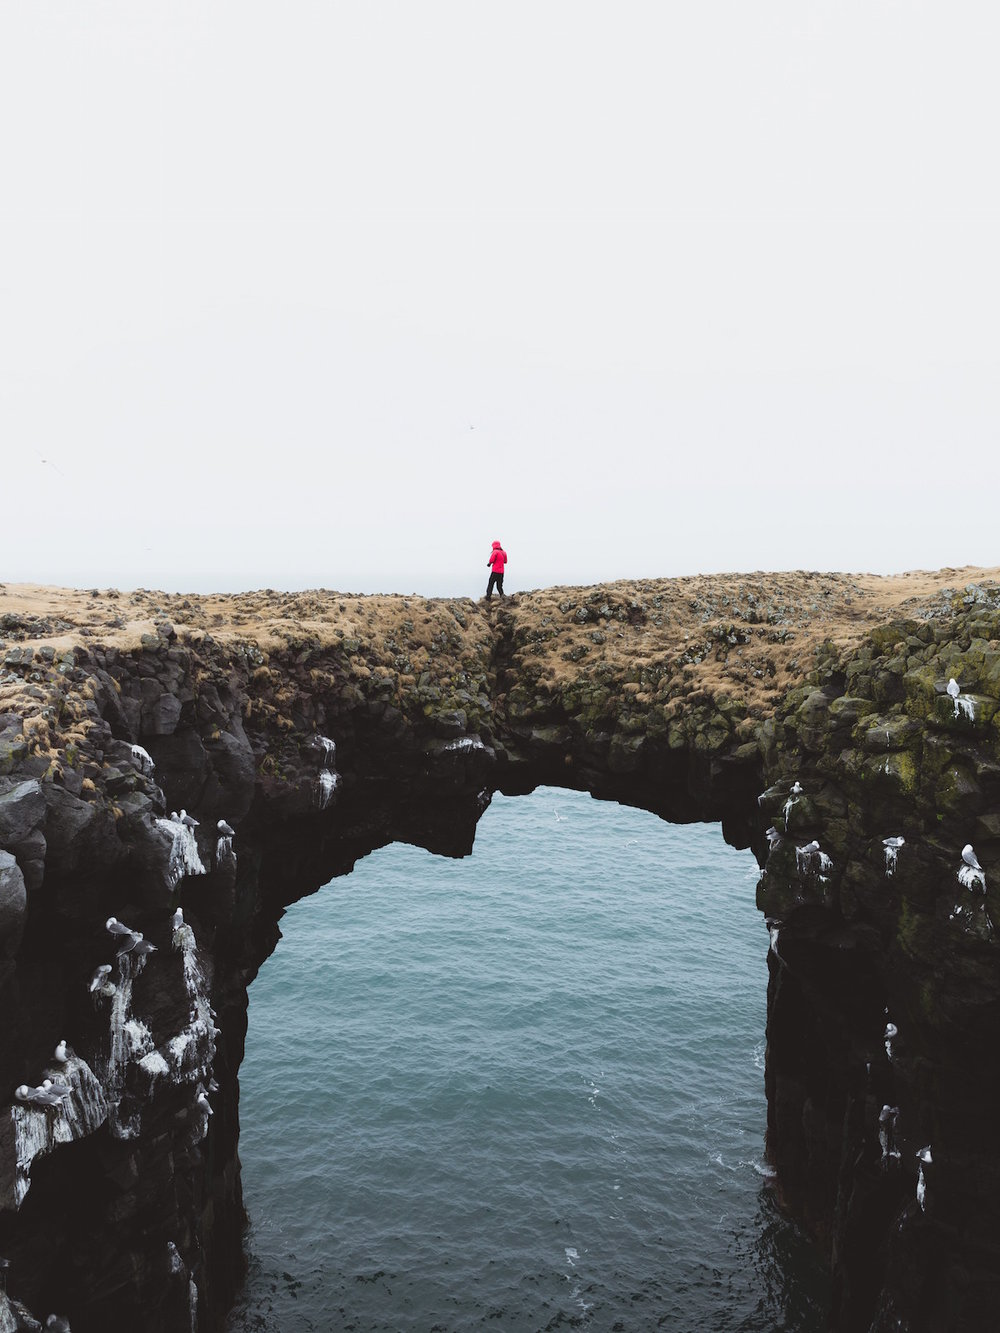 Natural archway over water made by rocky cliffs, with a person in a red jacket walking across